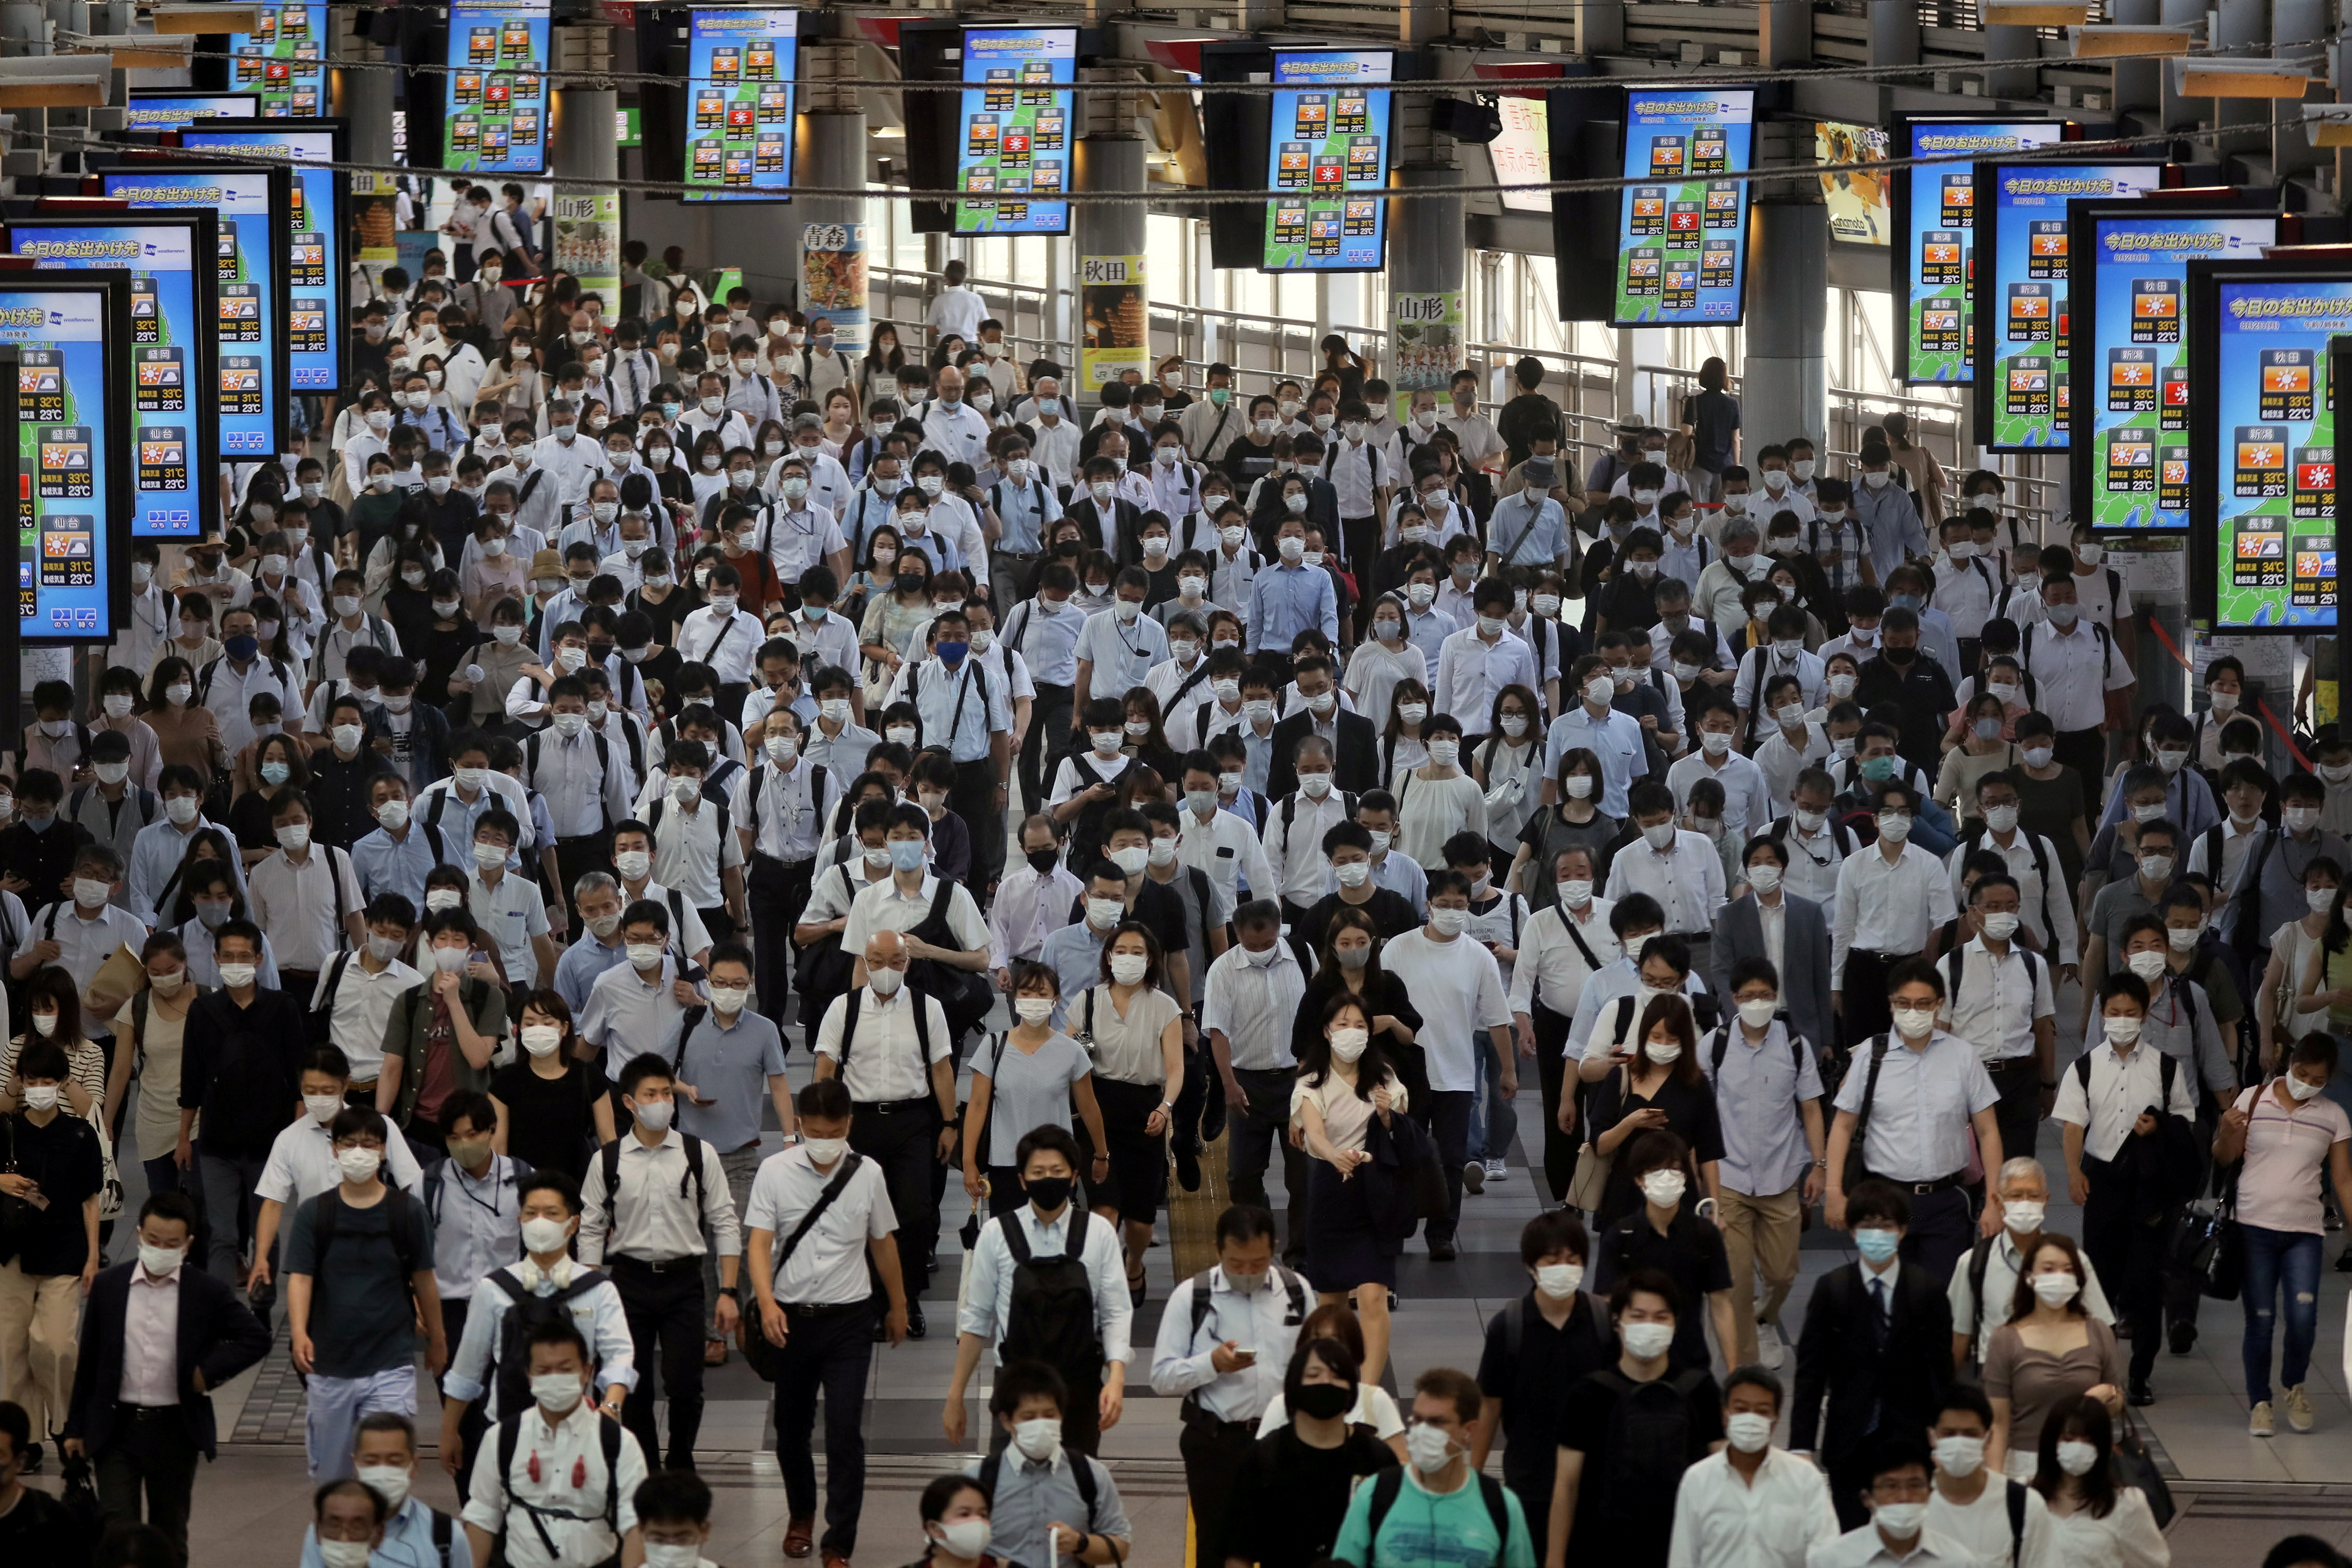 Commuters wearing face masks arrive at Shinagawa Station at the start of the working day amid the coronavirus disease (COVID-19) outbreak, in Tokyo, Japan, August 2, 2021 .REUTERS/Kevin Coombs     TPX IMAGES OF THE DAY